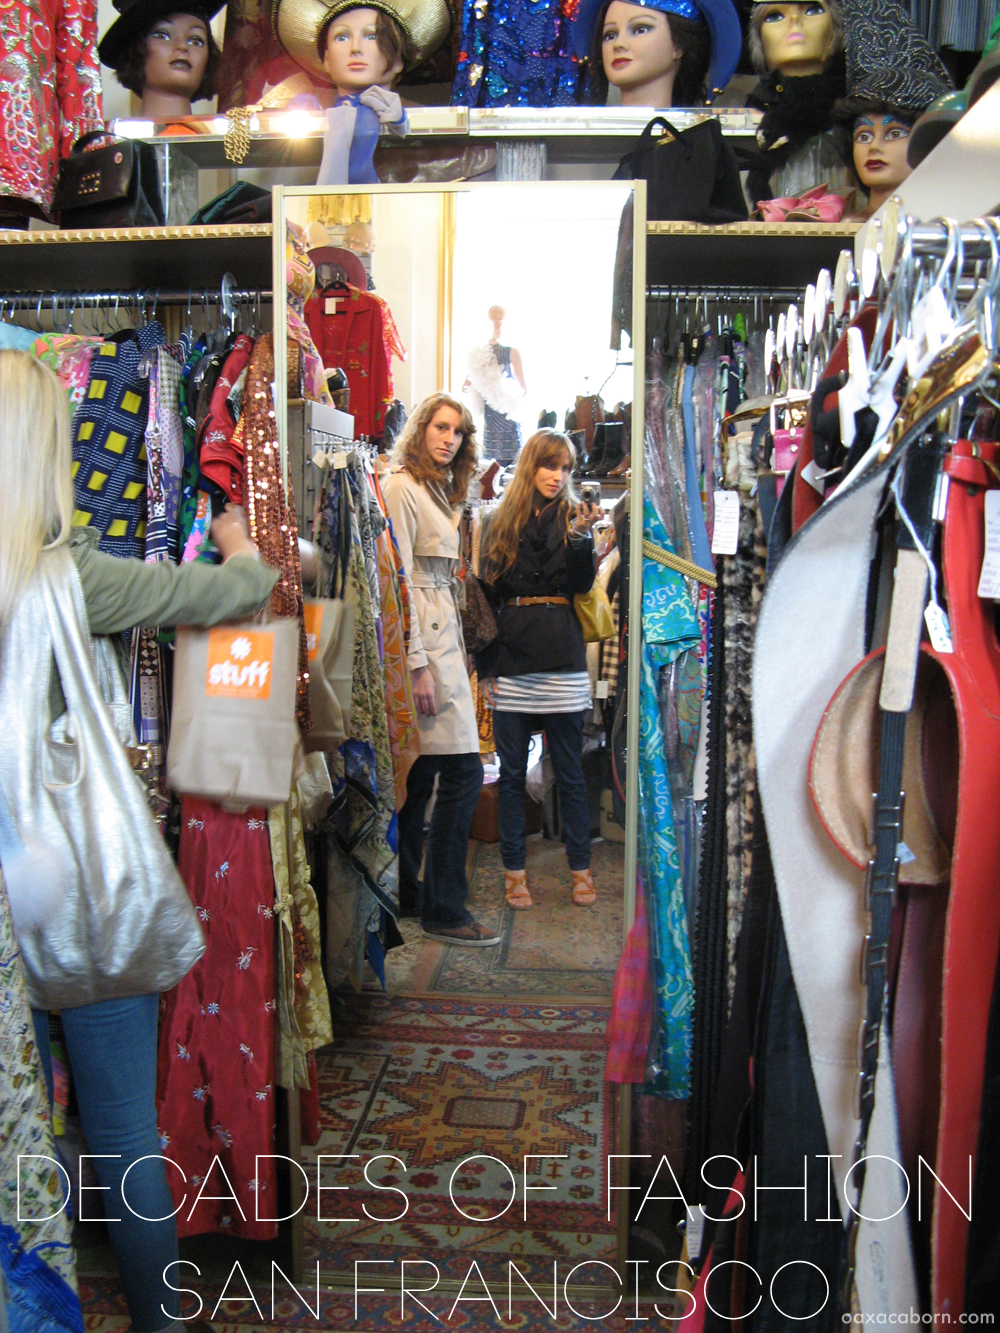 Shopping in Decades of Fashion on Haight Street in San Francisco, photo via Oaxacaborn dot com